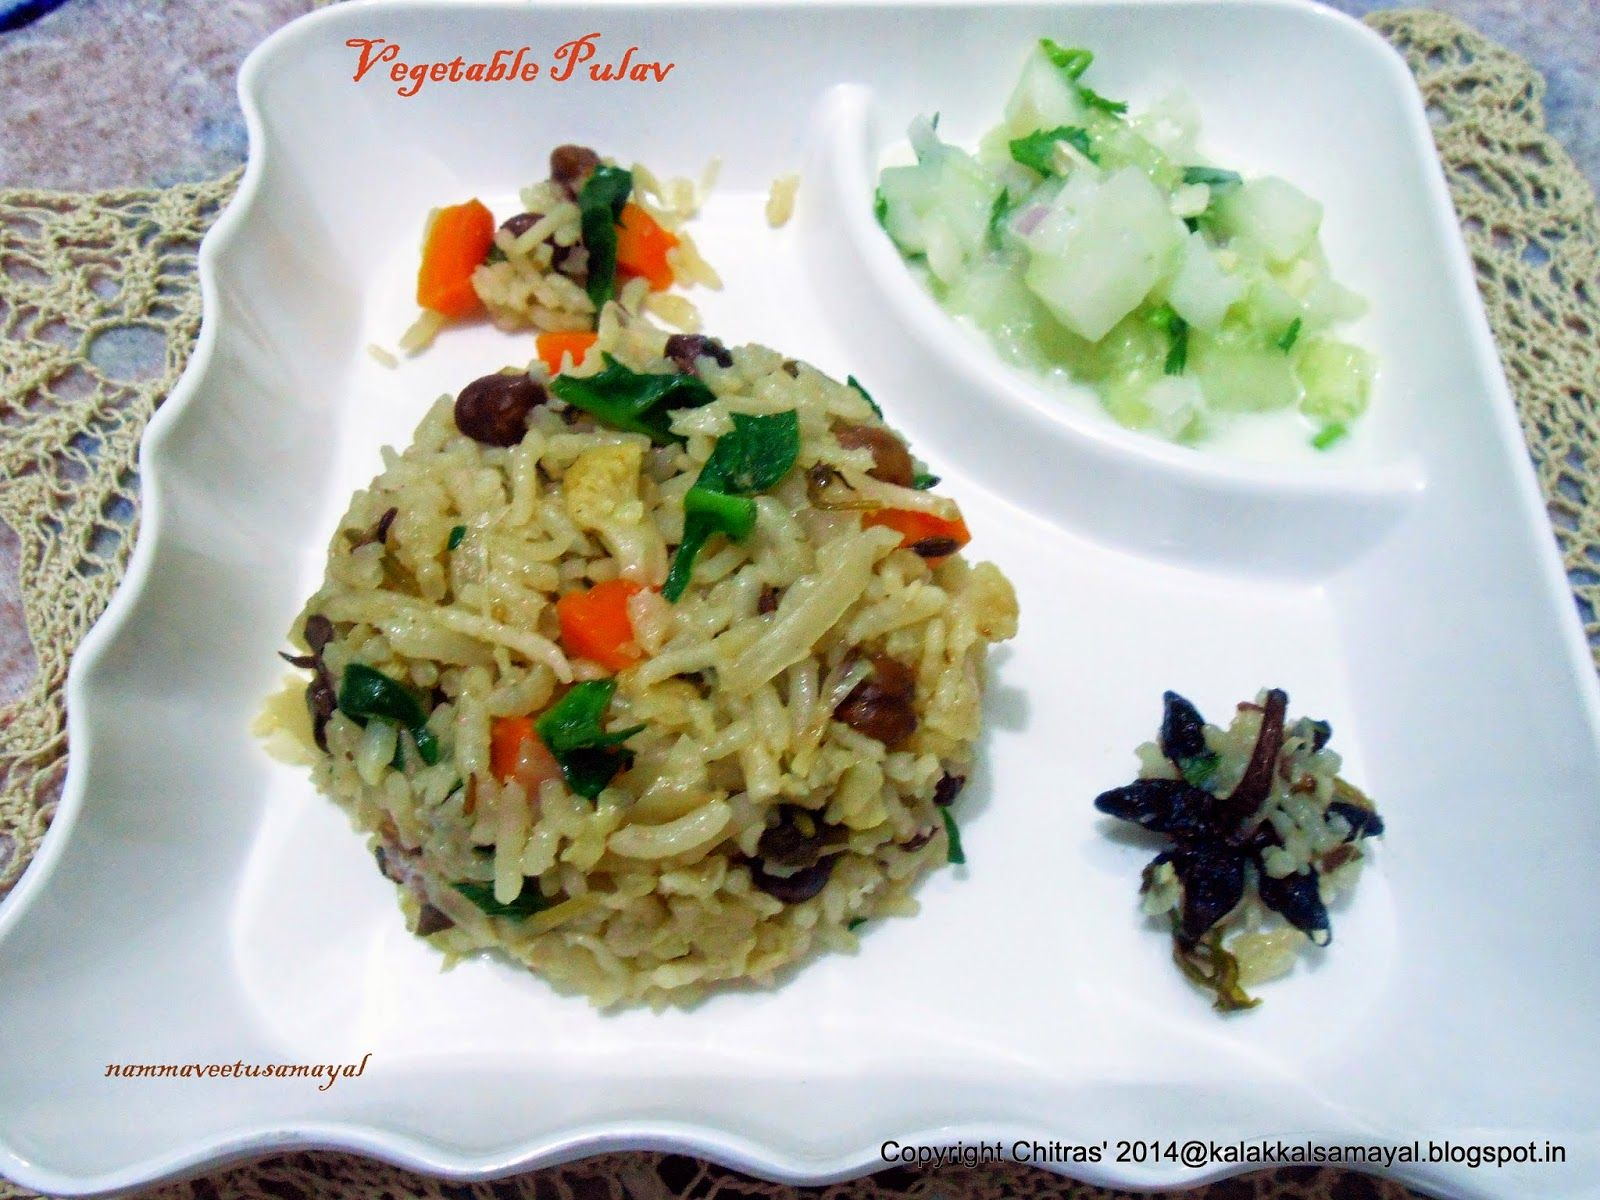 kalakkalsamayal Vegetable Pulav with Coconut Milk